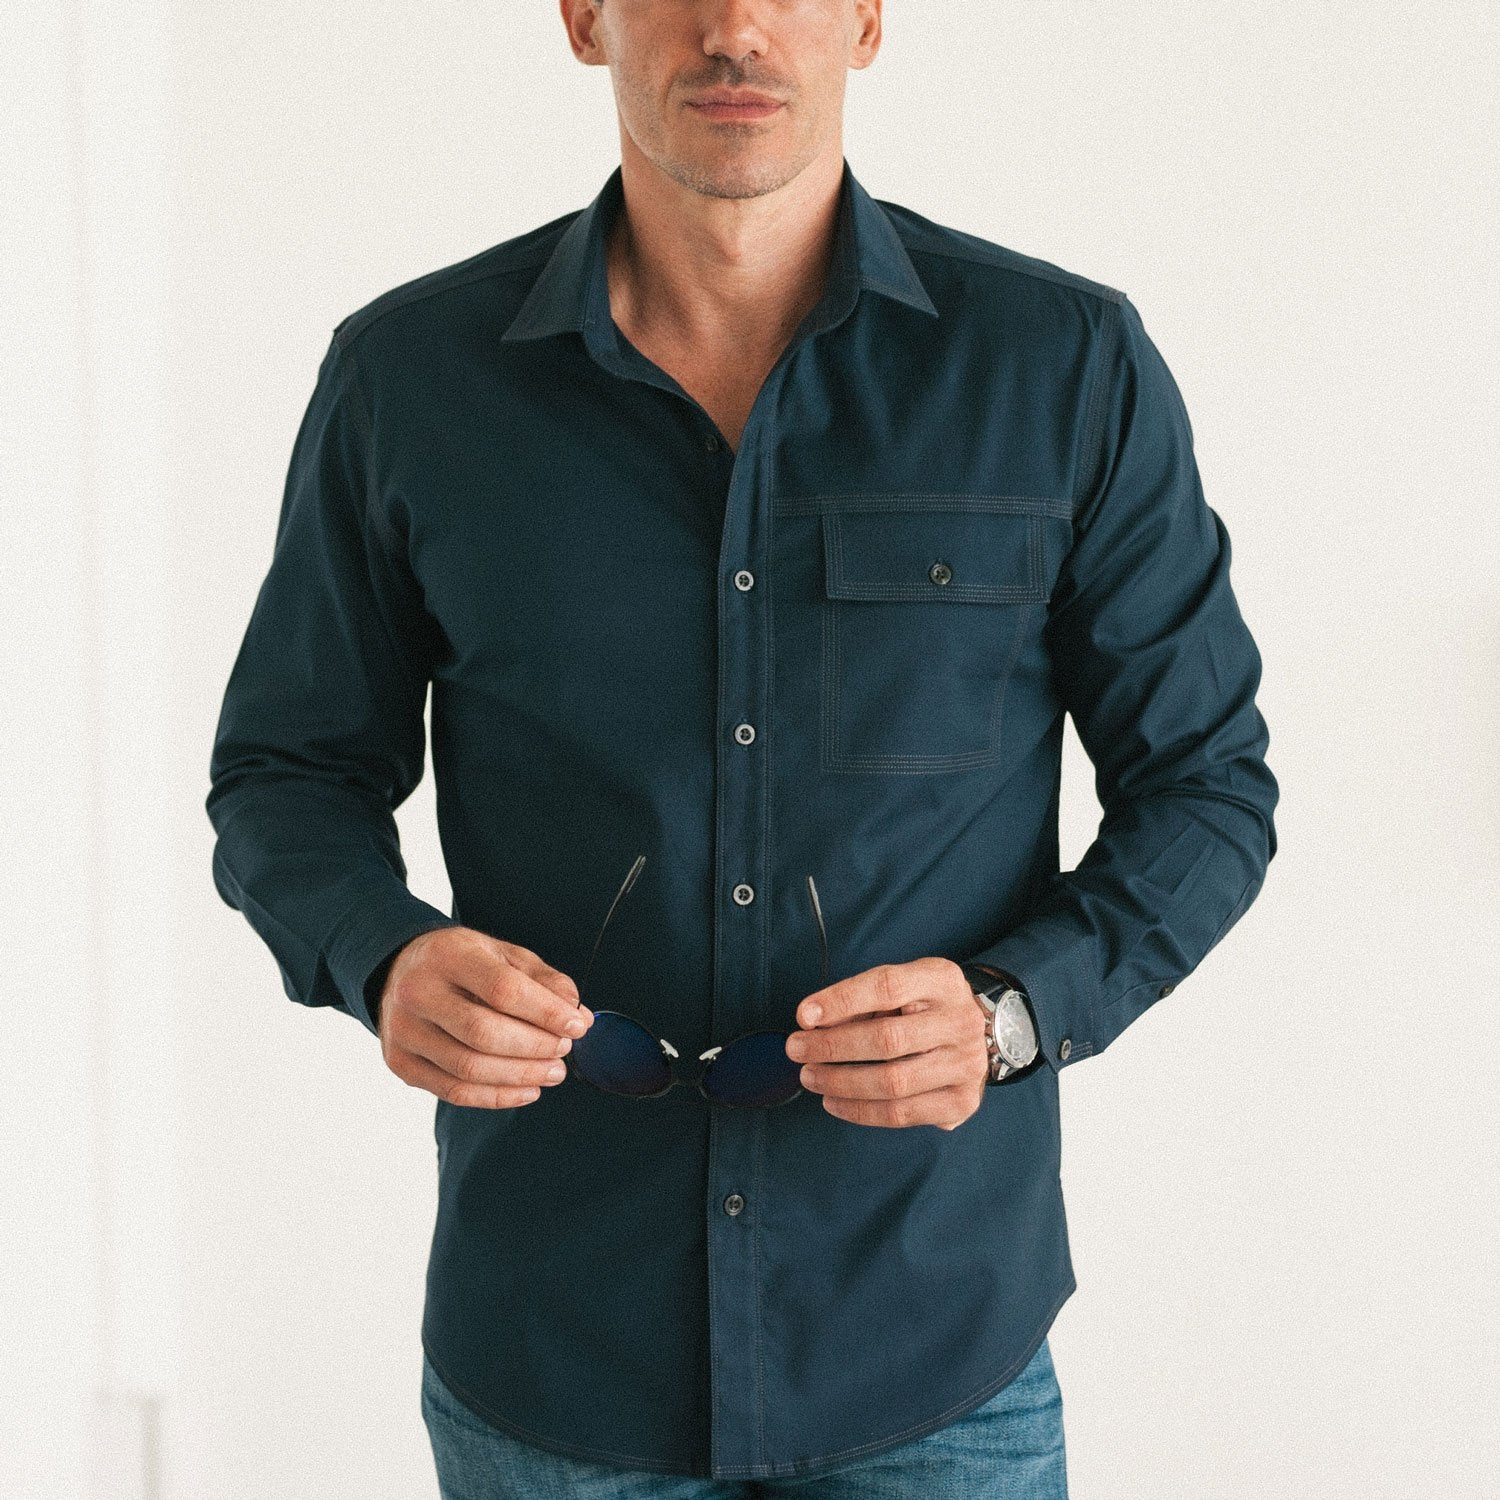 Men's Casual Shirt Boxy Fit Versus Correct Body Fit